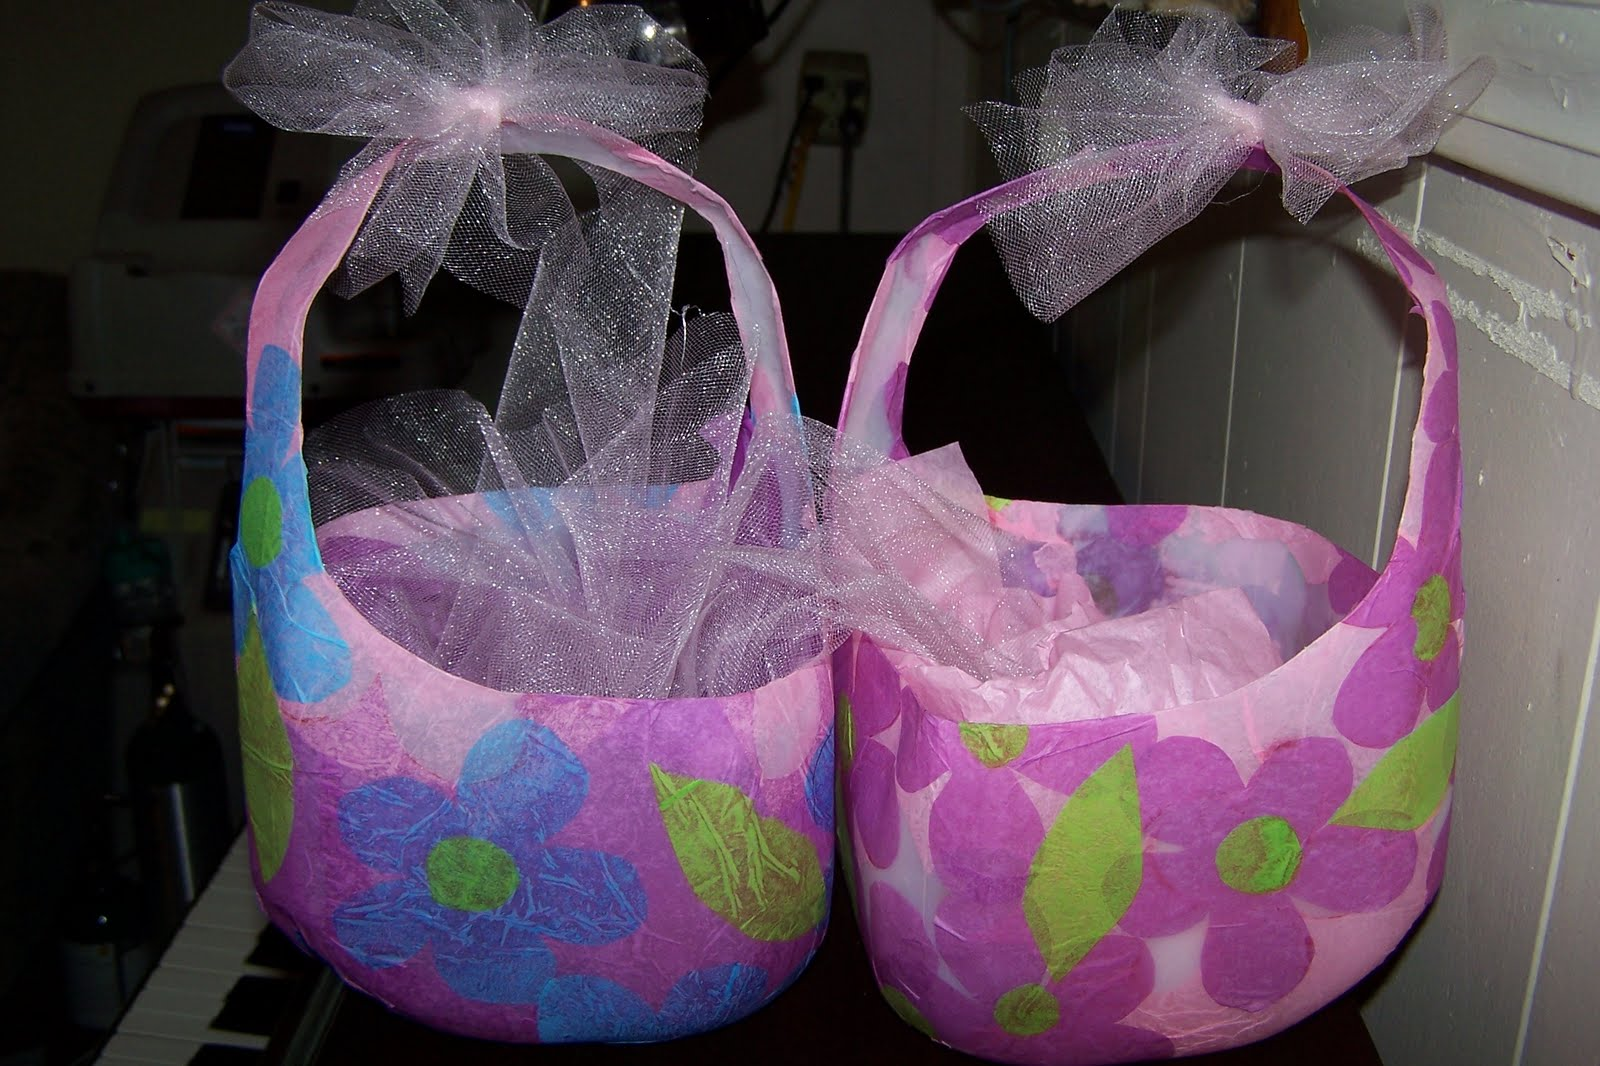 Water jug or milk jug easter baskets i gave to yws today with a water jug or milk jug easter baskets i gave to yws today with a booklet of stories about our savior negle Image collections